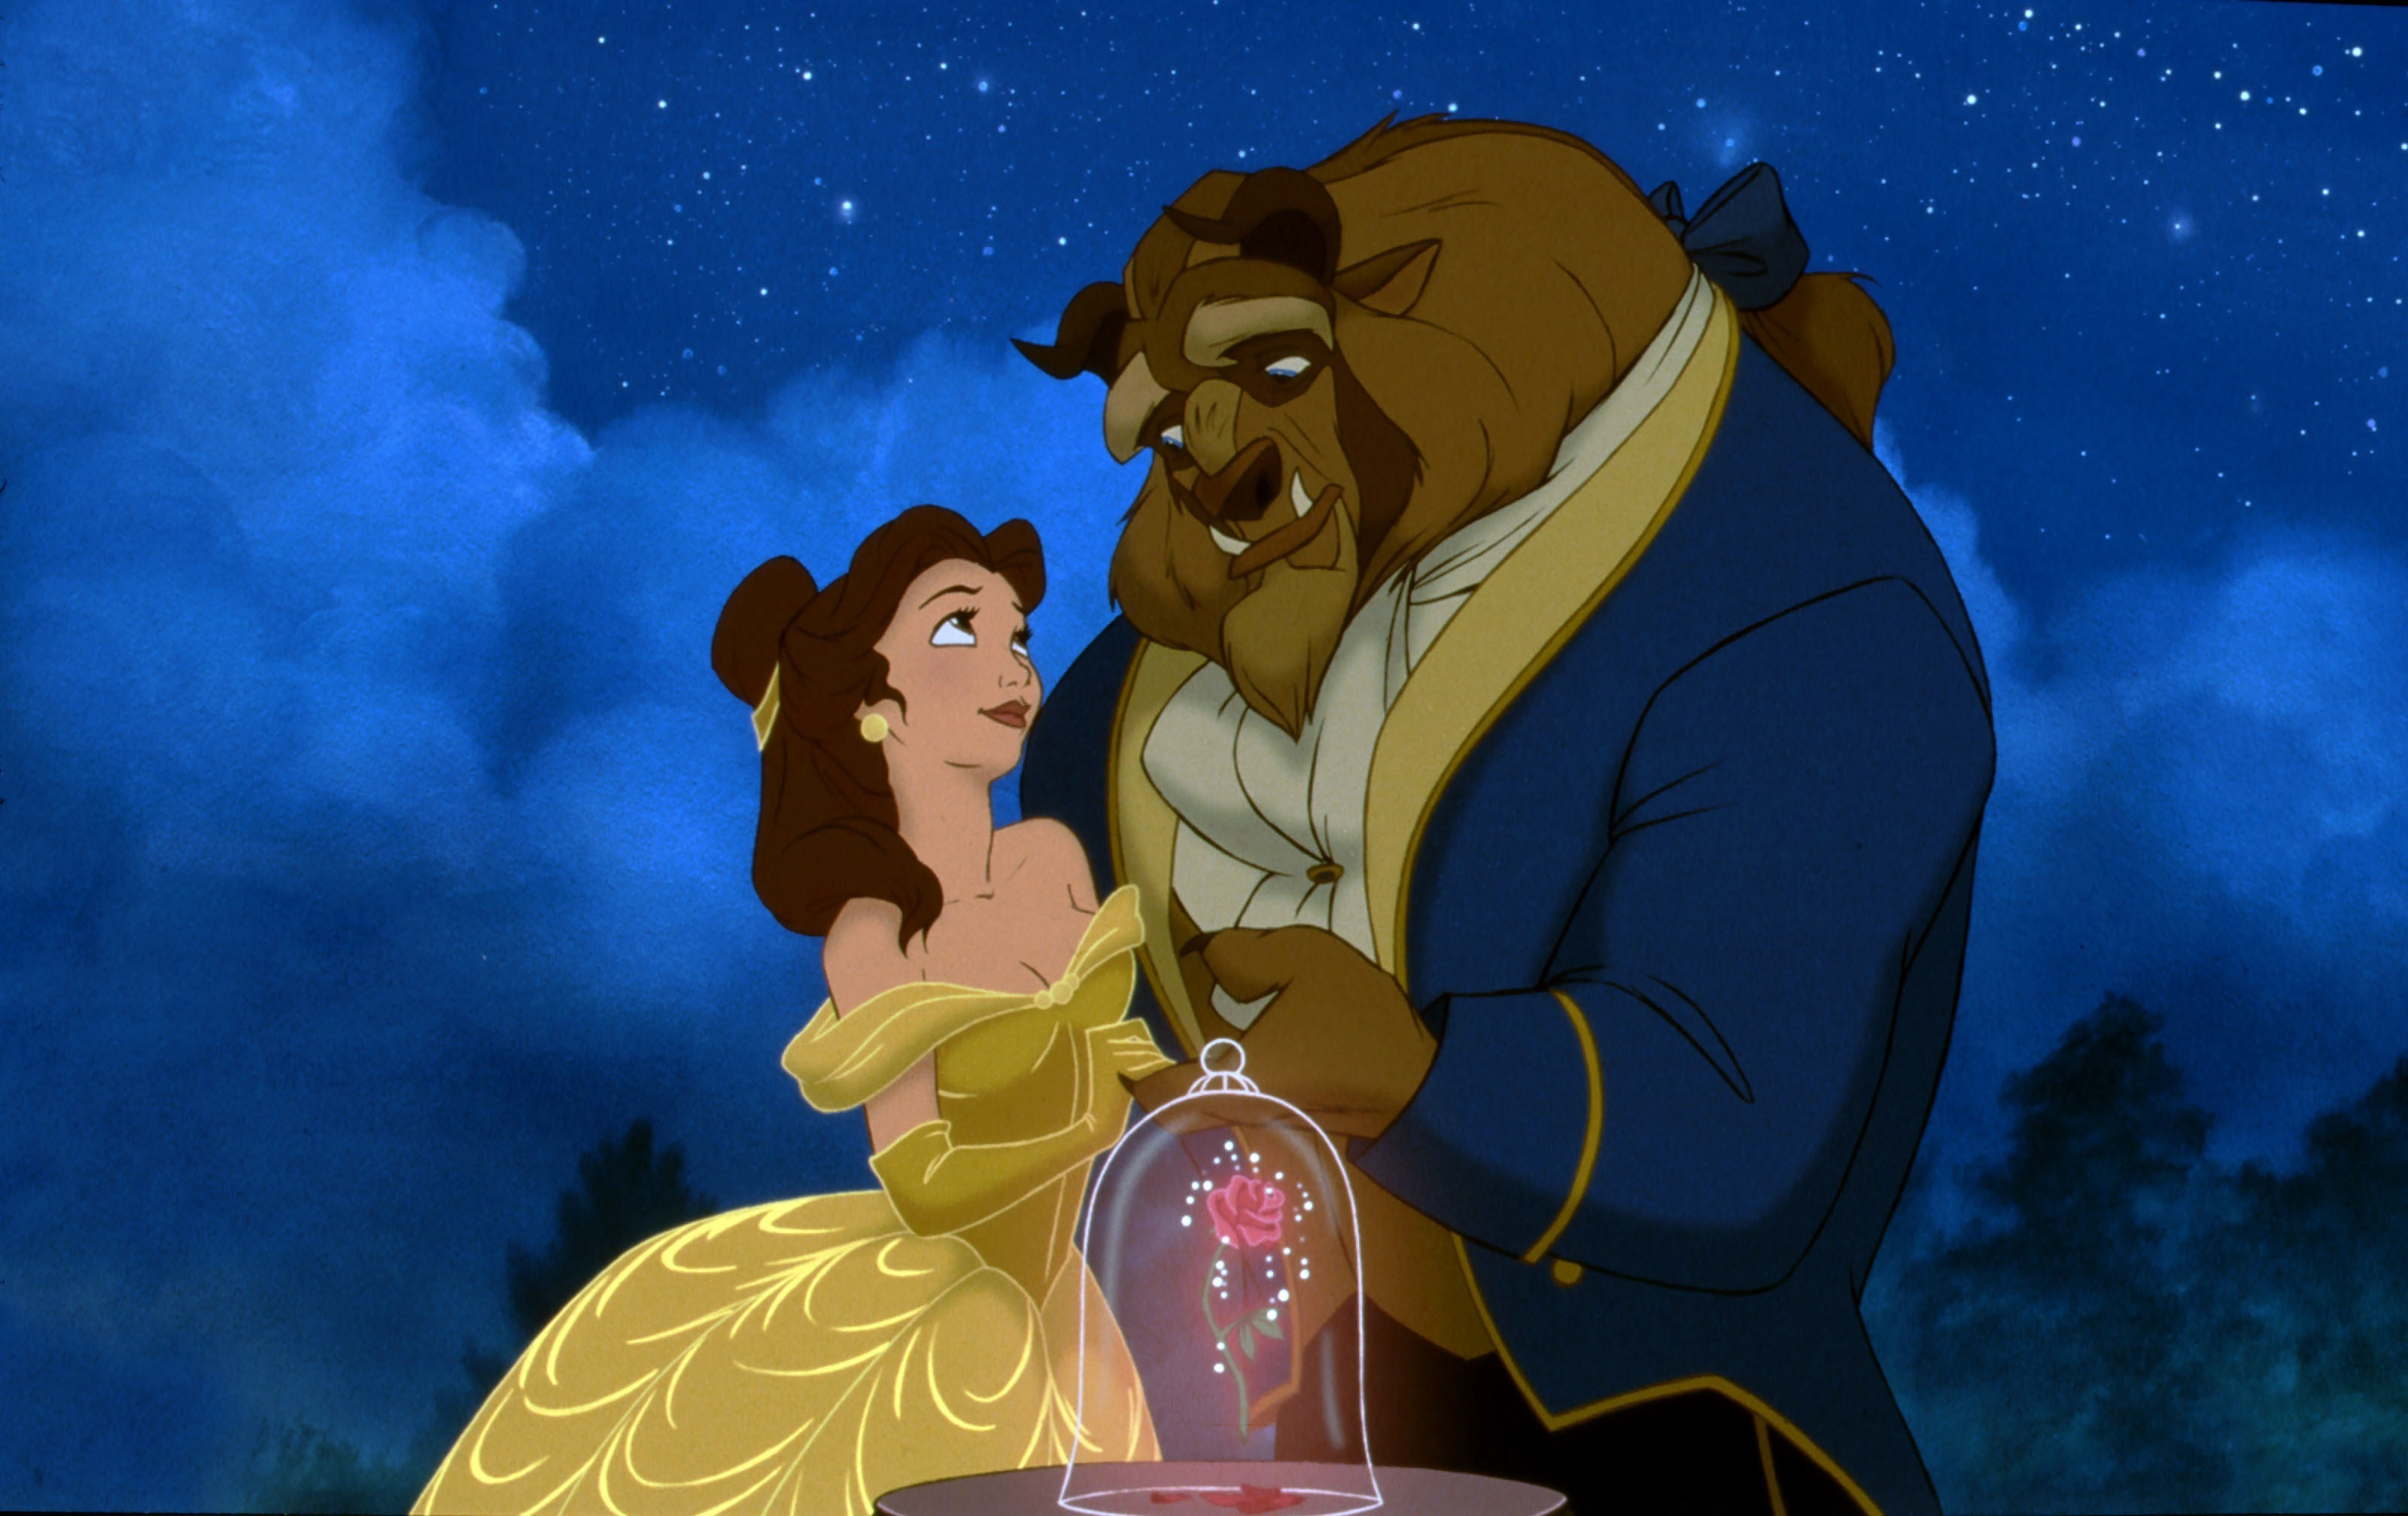 Belle (voiced by Paige O'Hara) and the Beast (voiced by Robby Benson) in Beauty and the Beast (1991)